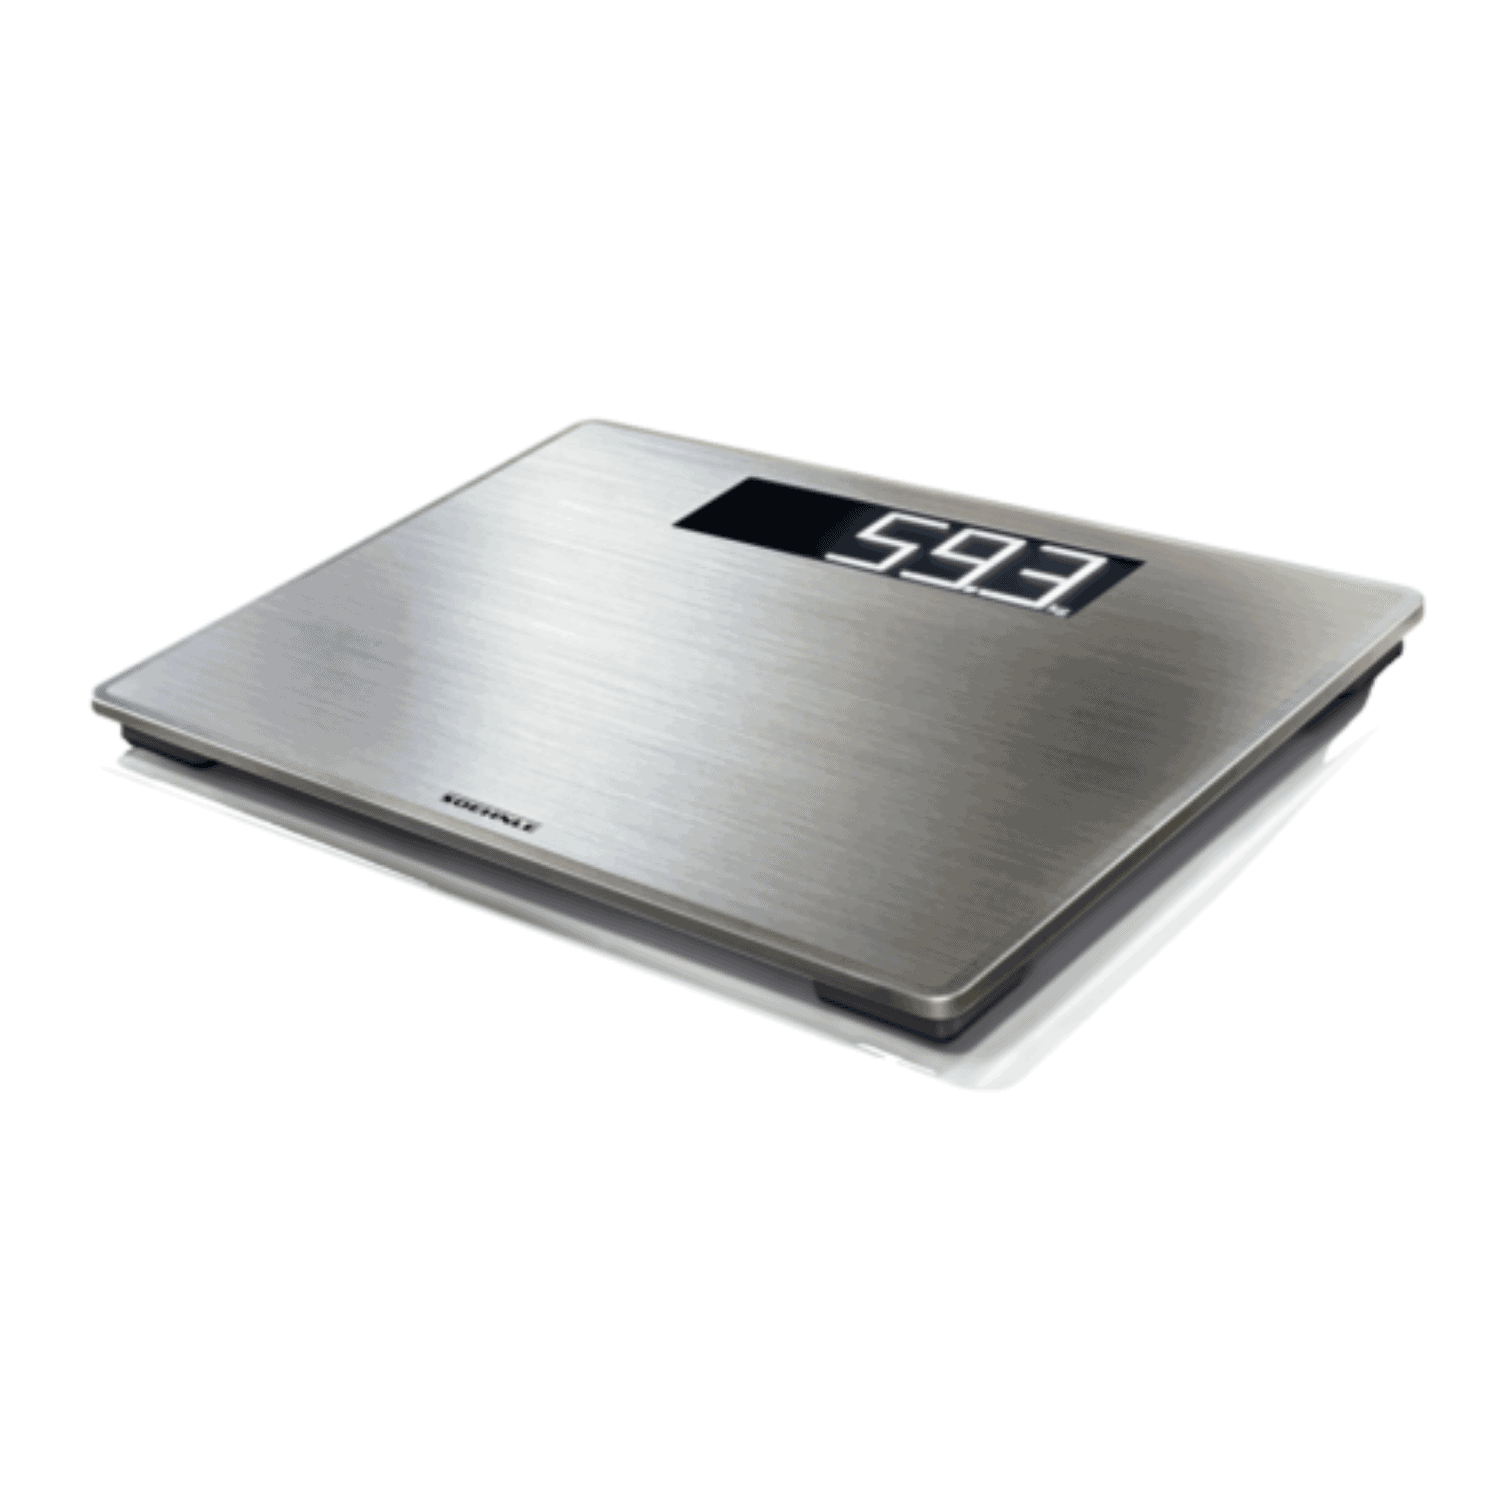 Scale 300 – Product Image